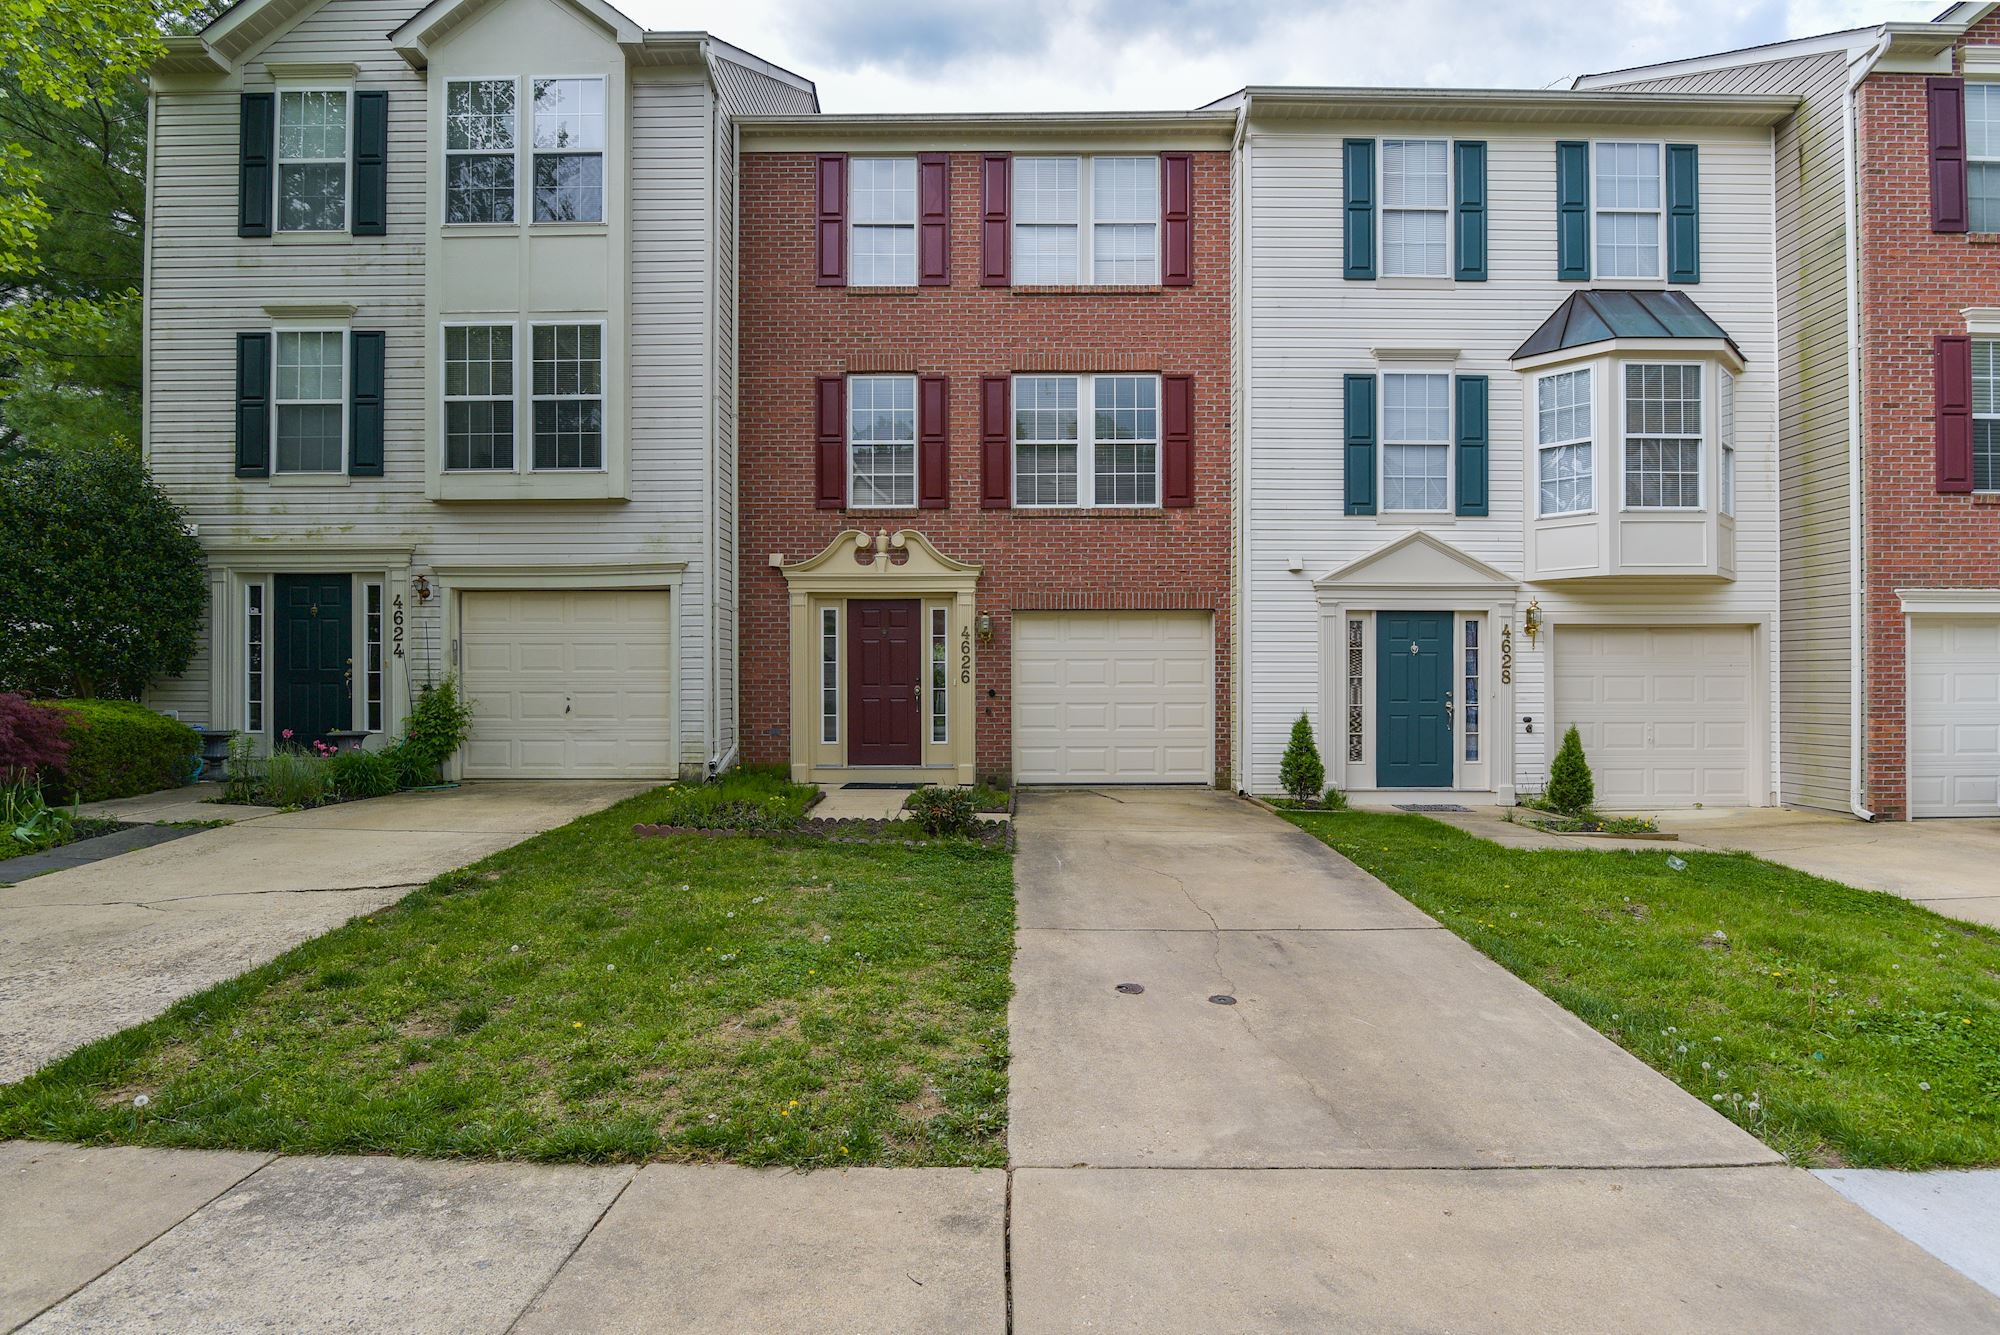 NEW LISTING: 3 BD Townhome in Oatland Farm, Olney, MD